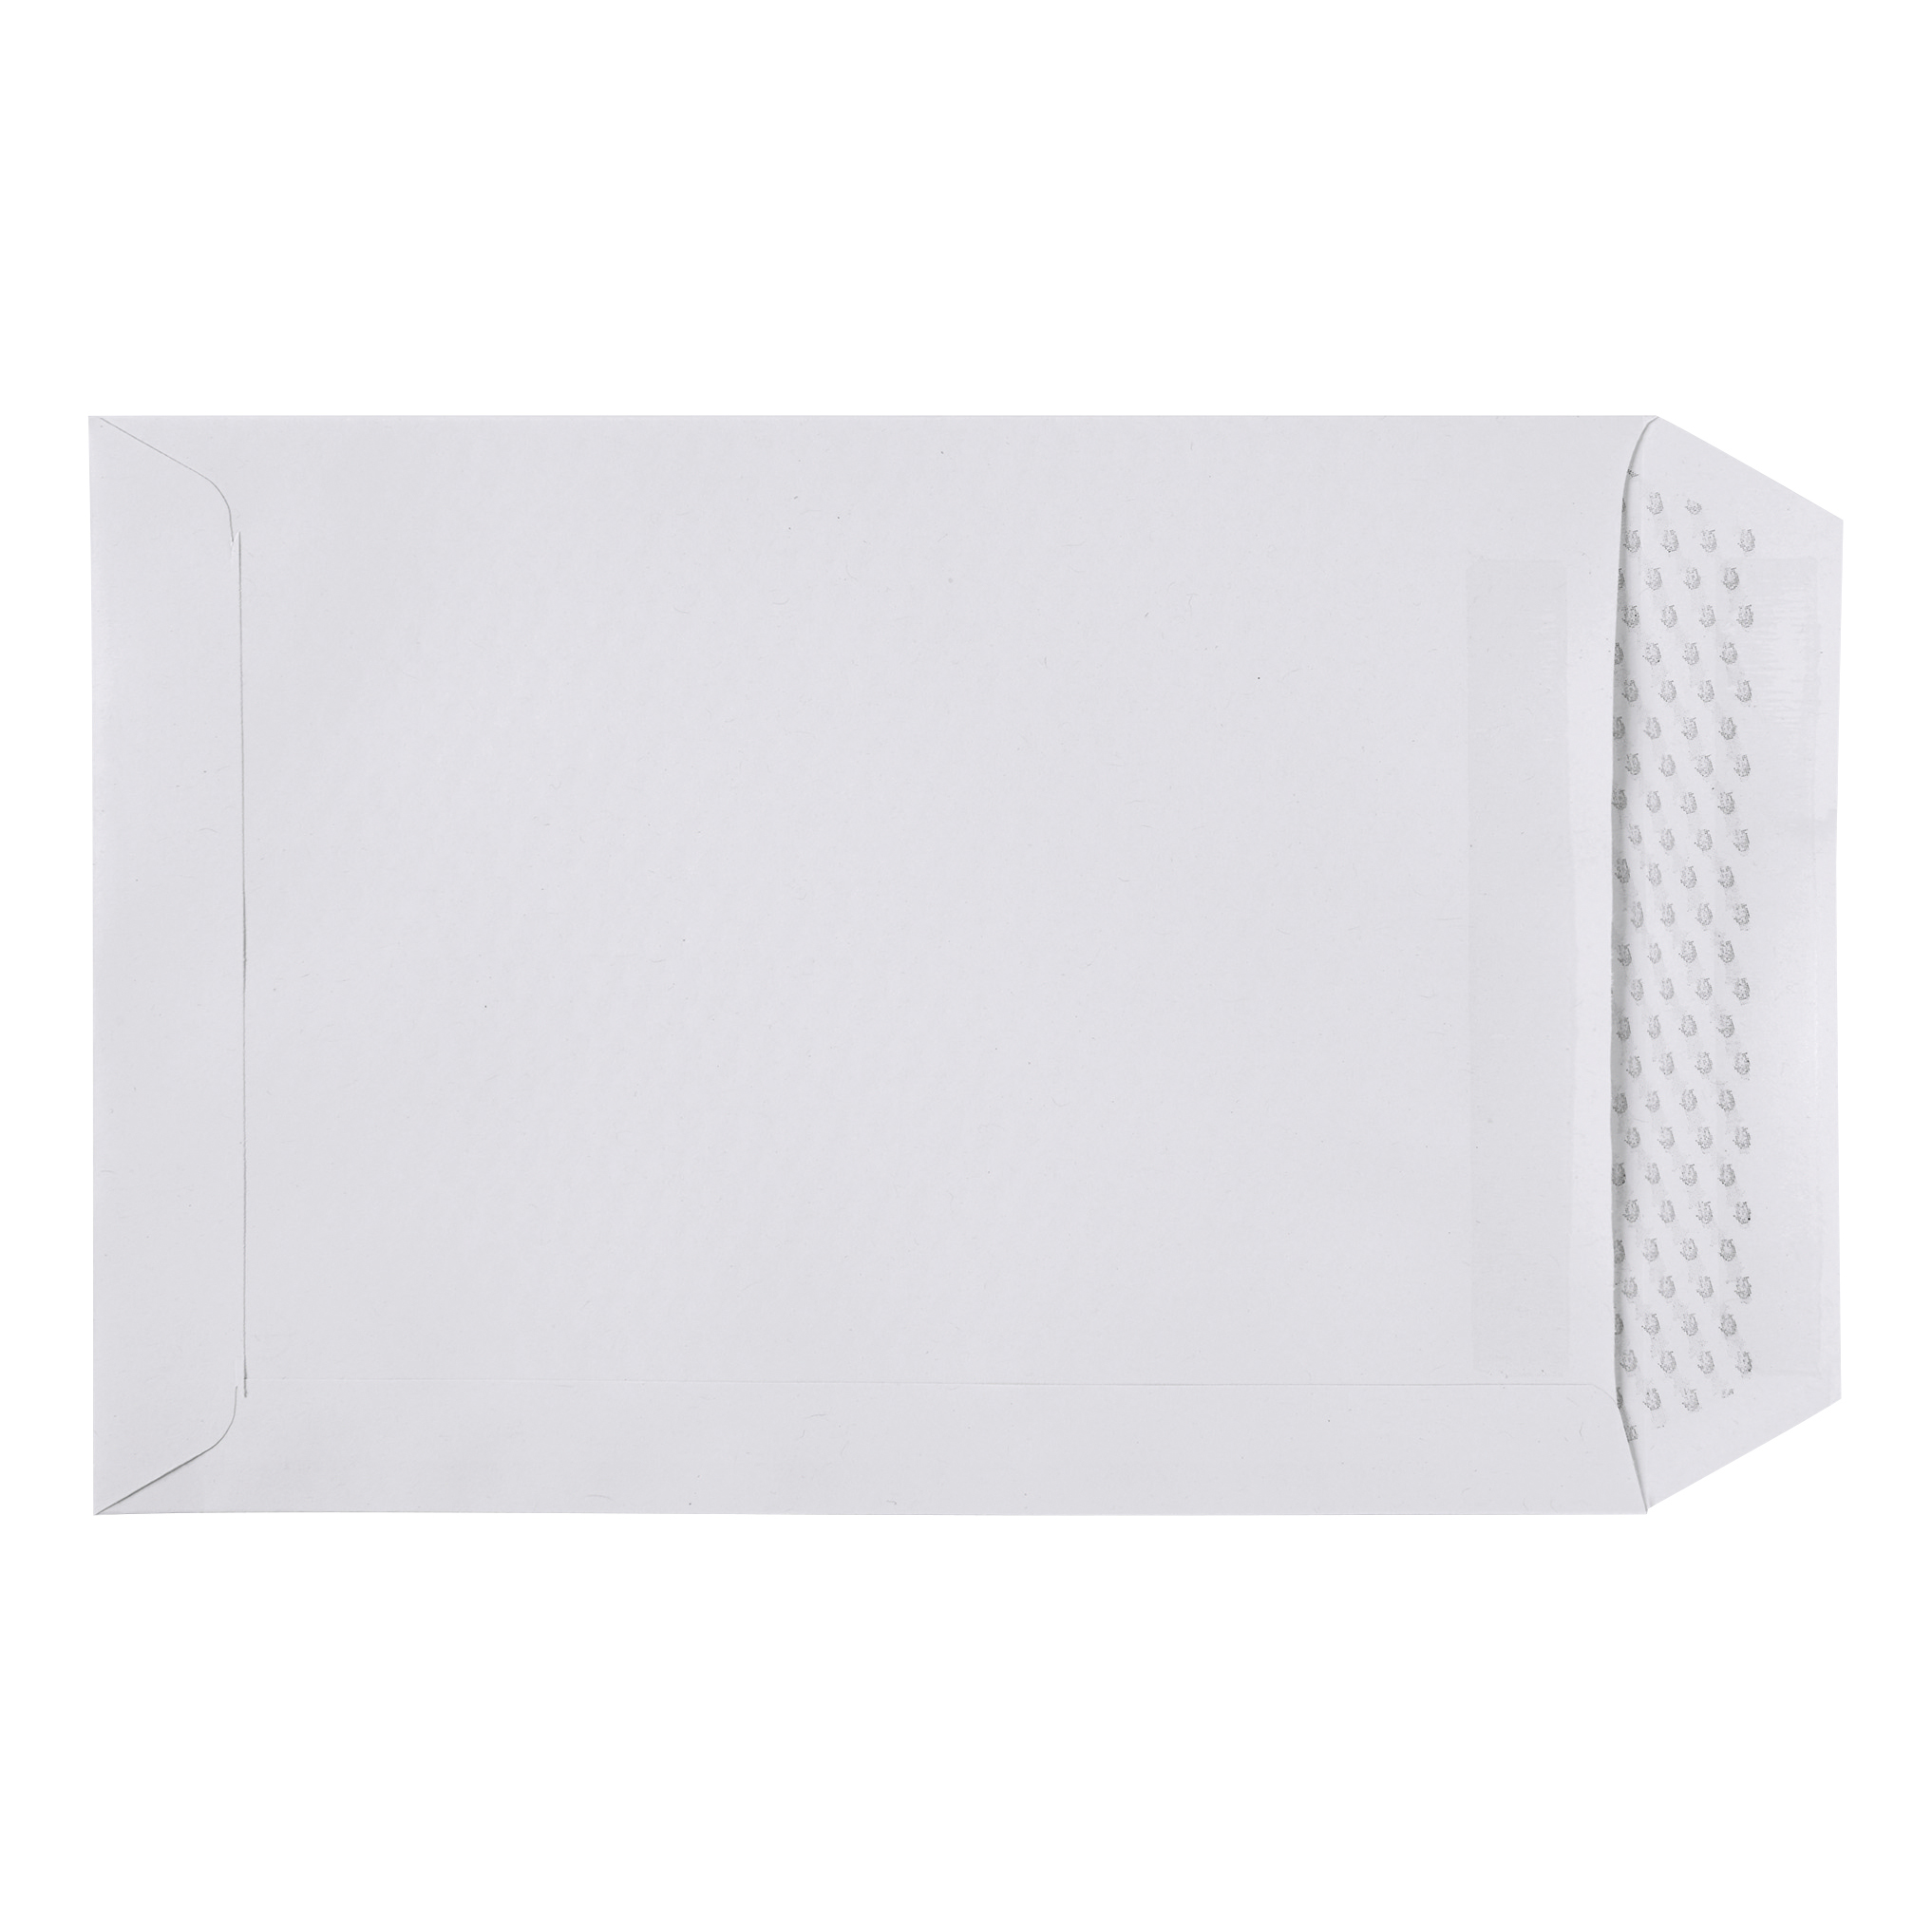 C5 5 Star Eco Envelopes Recycled Pocket Self Seal 90gsm C5 229x162mm White Pack 500